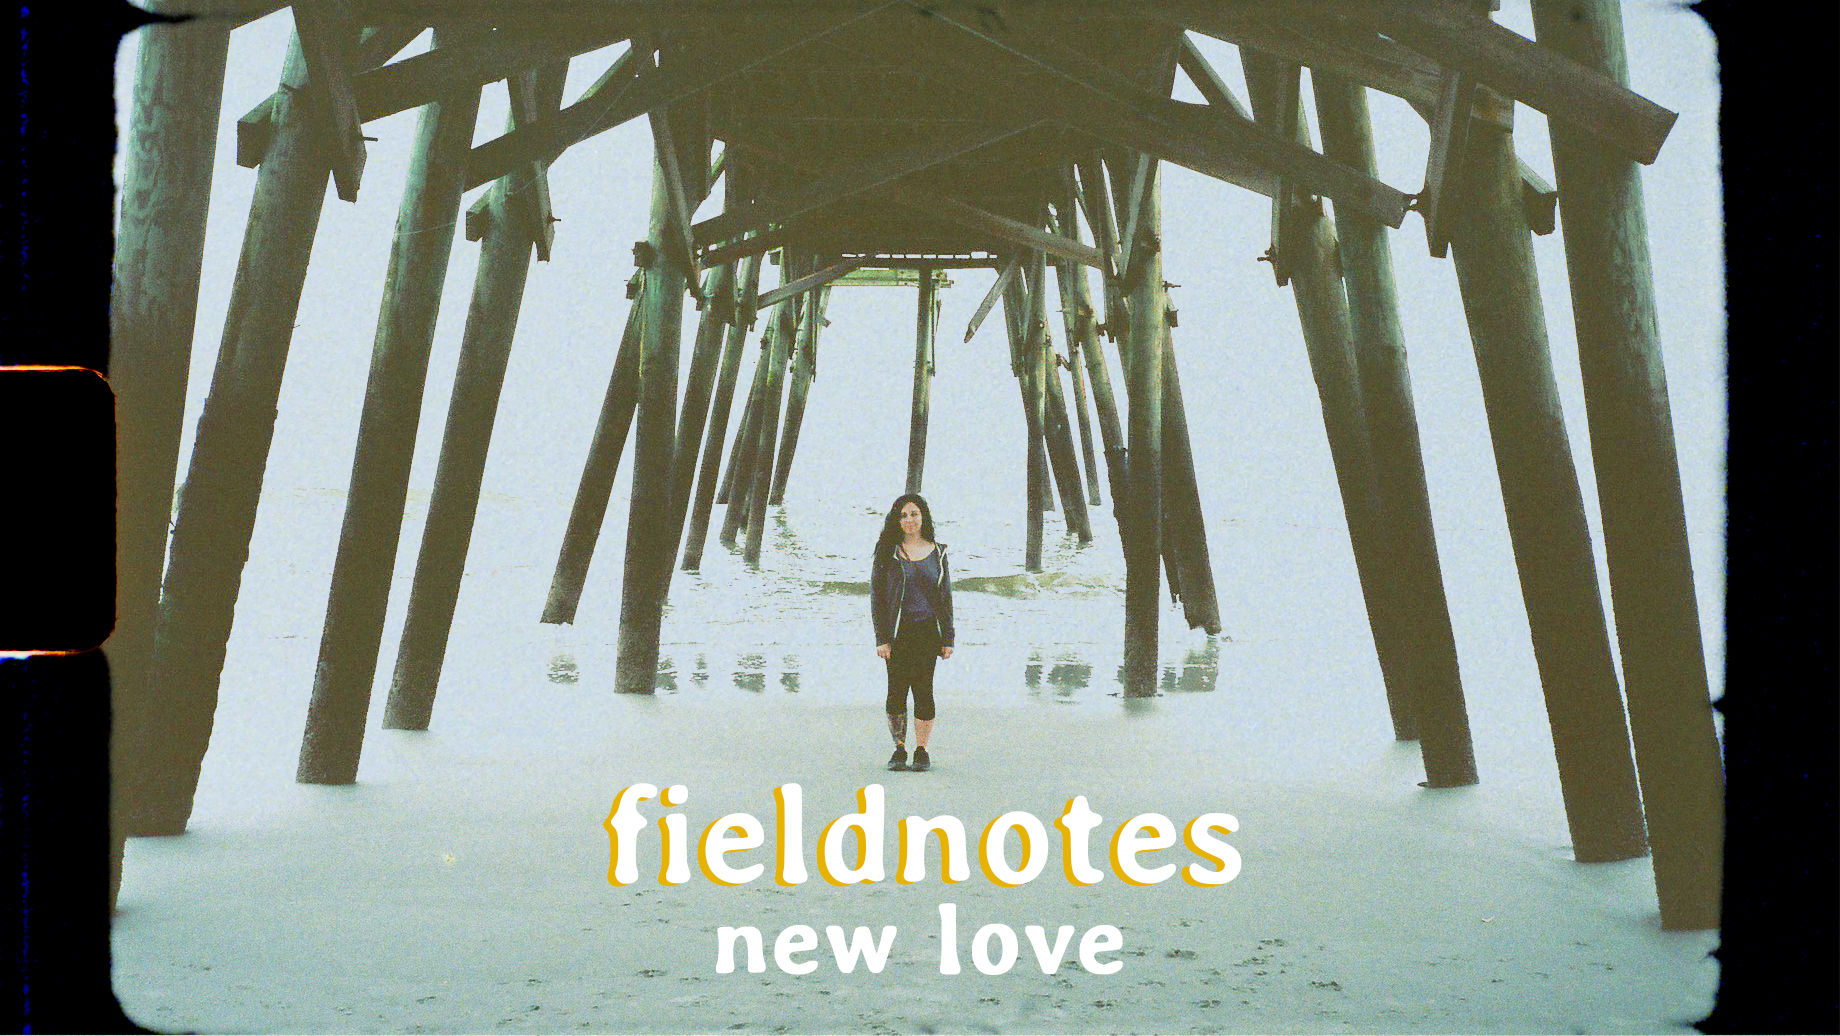 - FIELDNOTES - NEW LOVECelebrating a year of love.